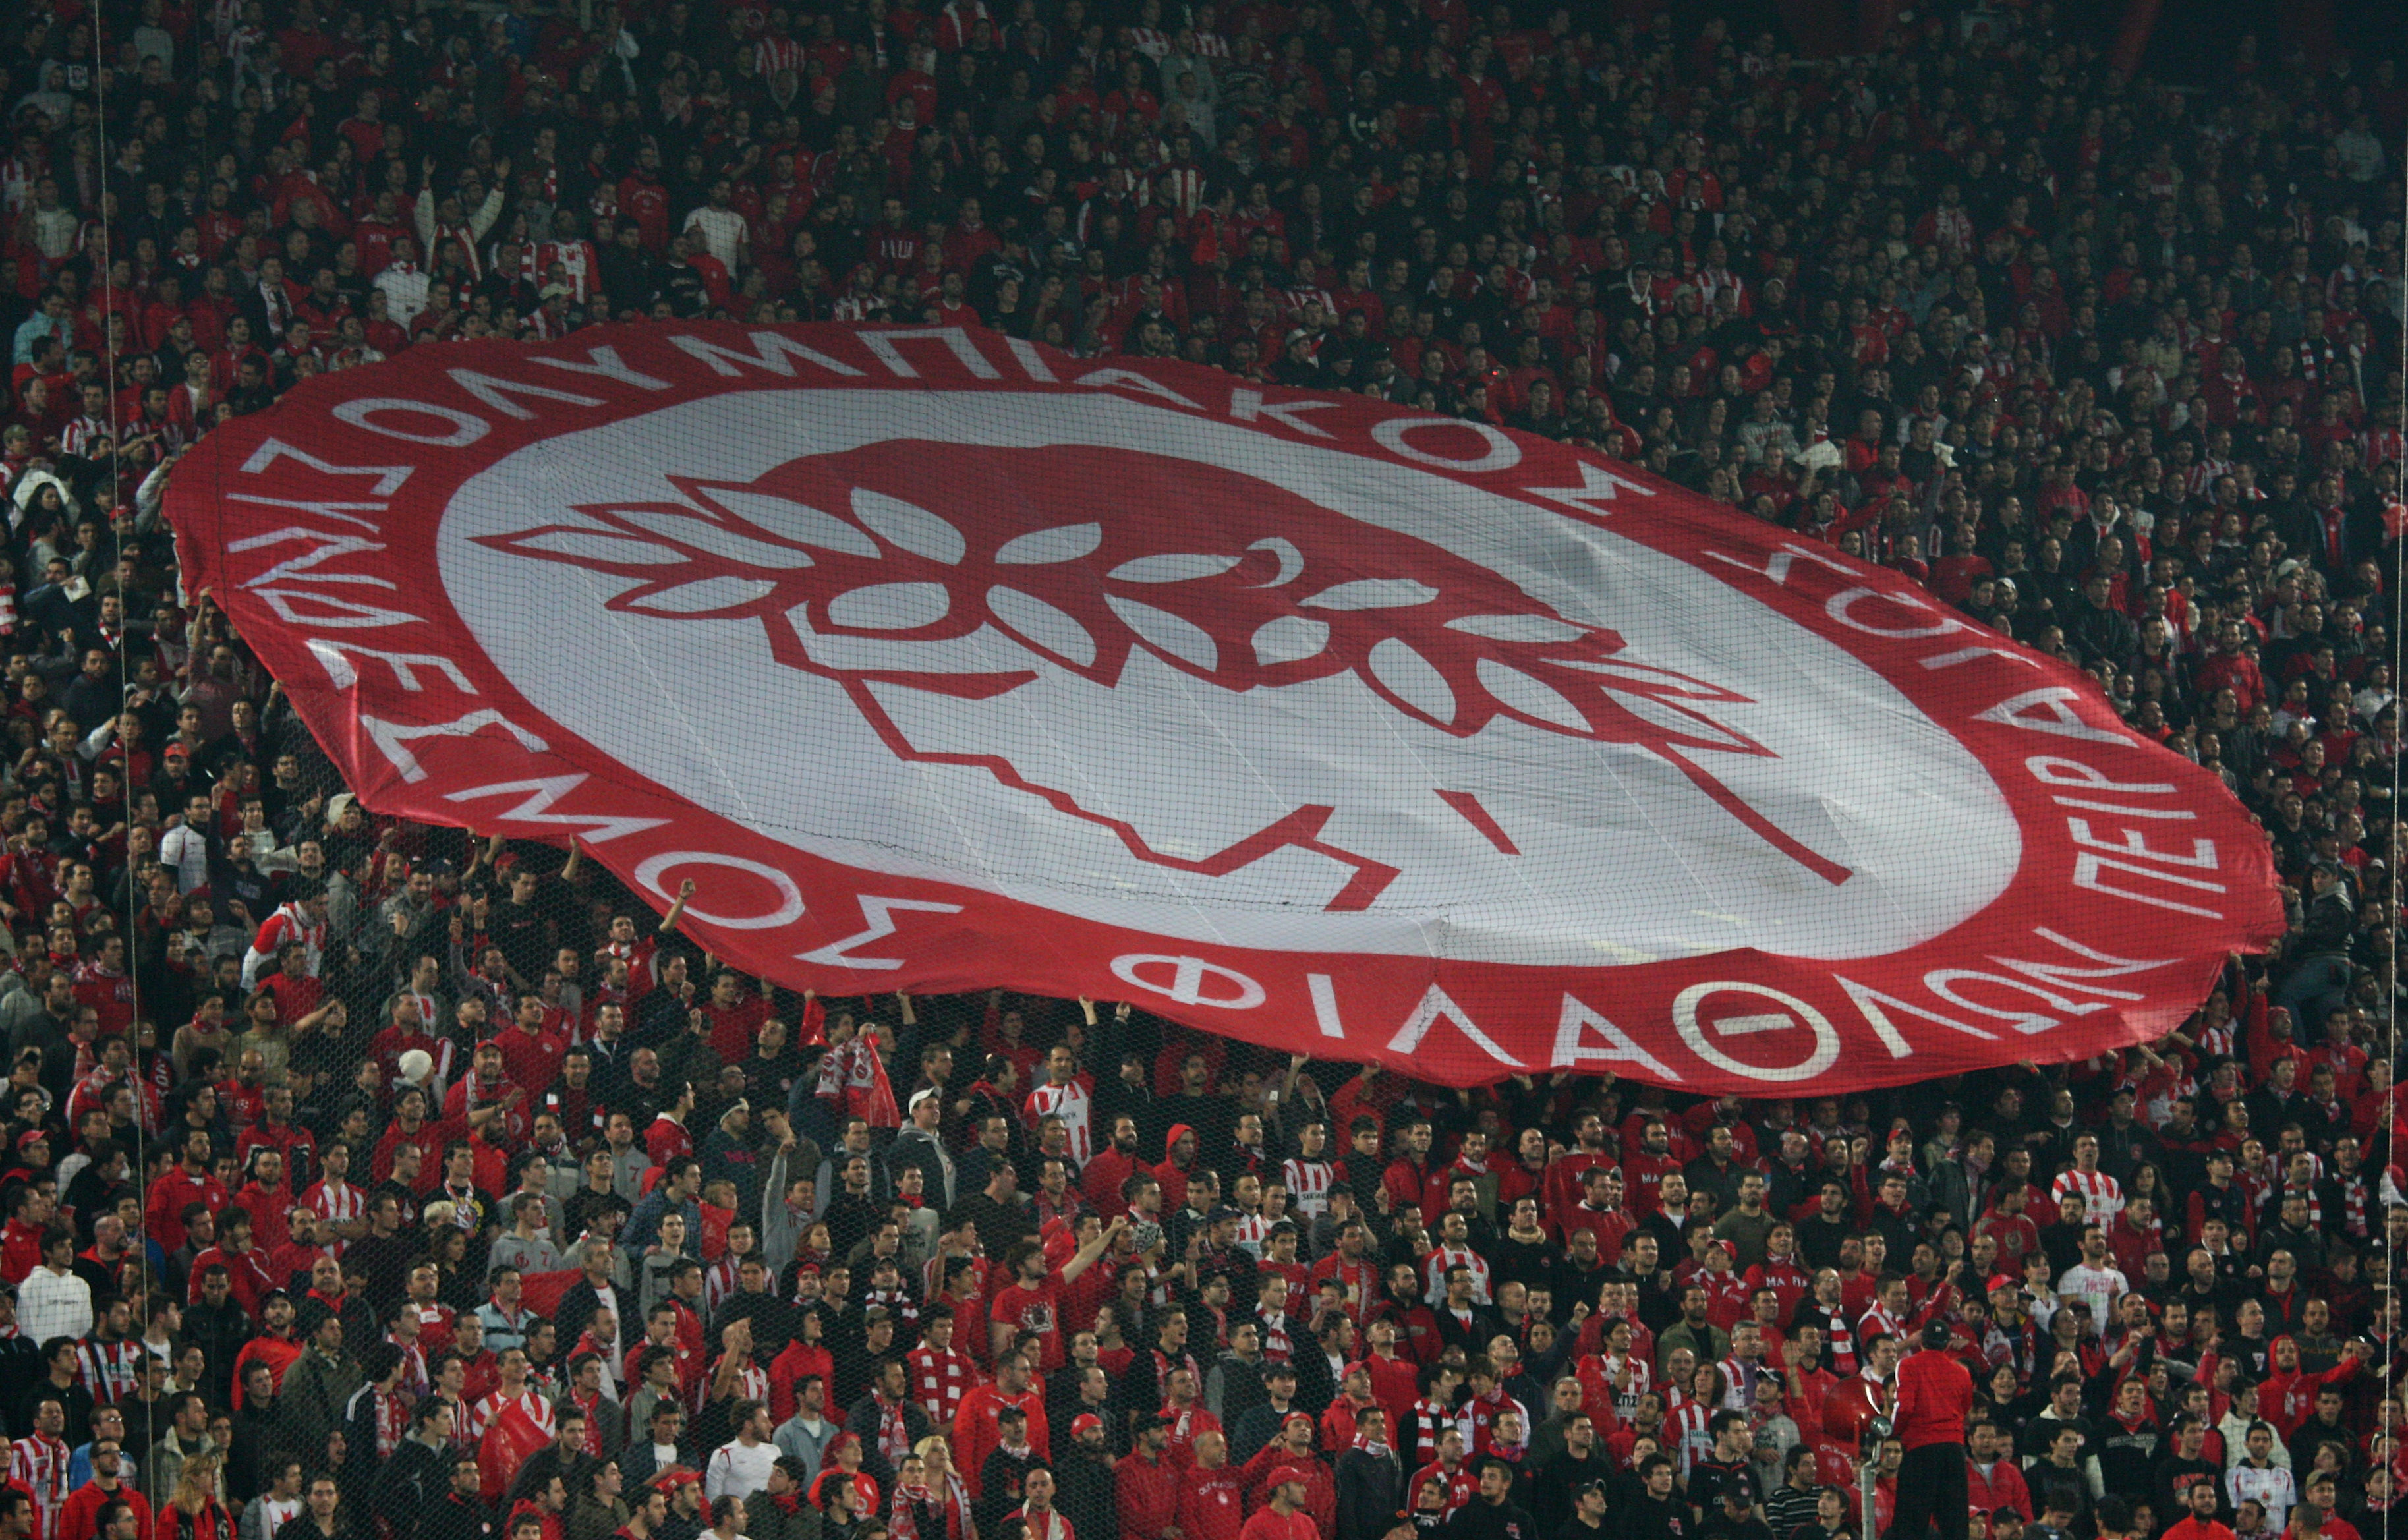 ATHENS, GREECE - DECEMBER 09:  Olympiakos fans during the UEFA Champions League Group H match between Olympiakos and Arsenal at the Georgios Karaiskakis Stadium on December 9, 2009 in Athens, Greece.  (Photo by Richard Heathcote/Getty Images)